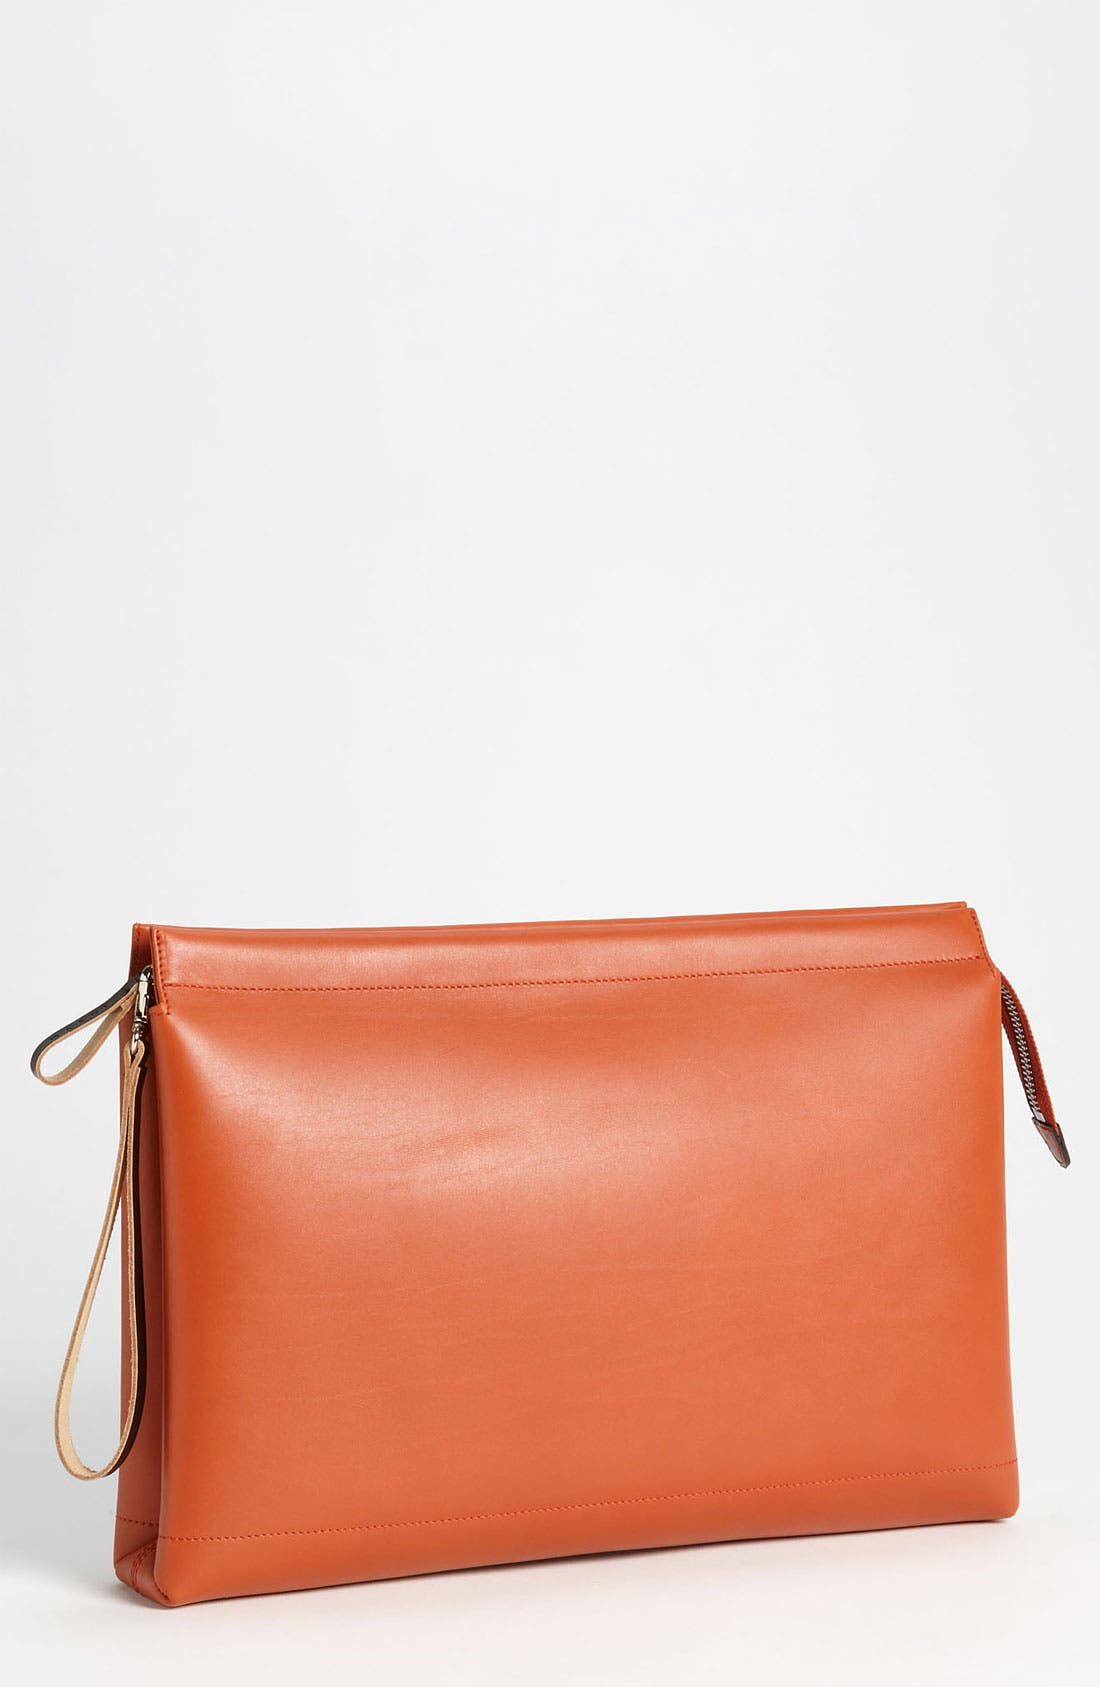 Main Image - Marni Leather Clutch